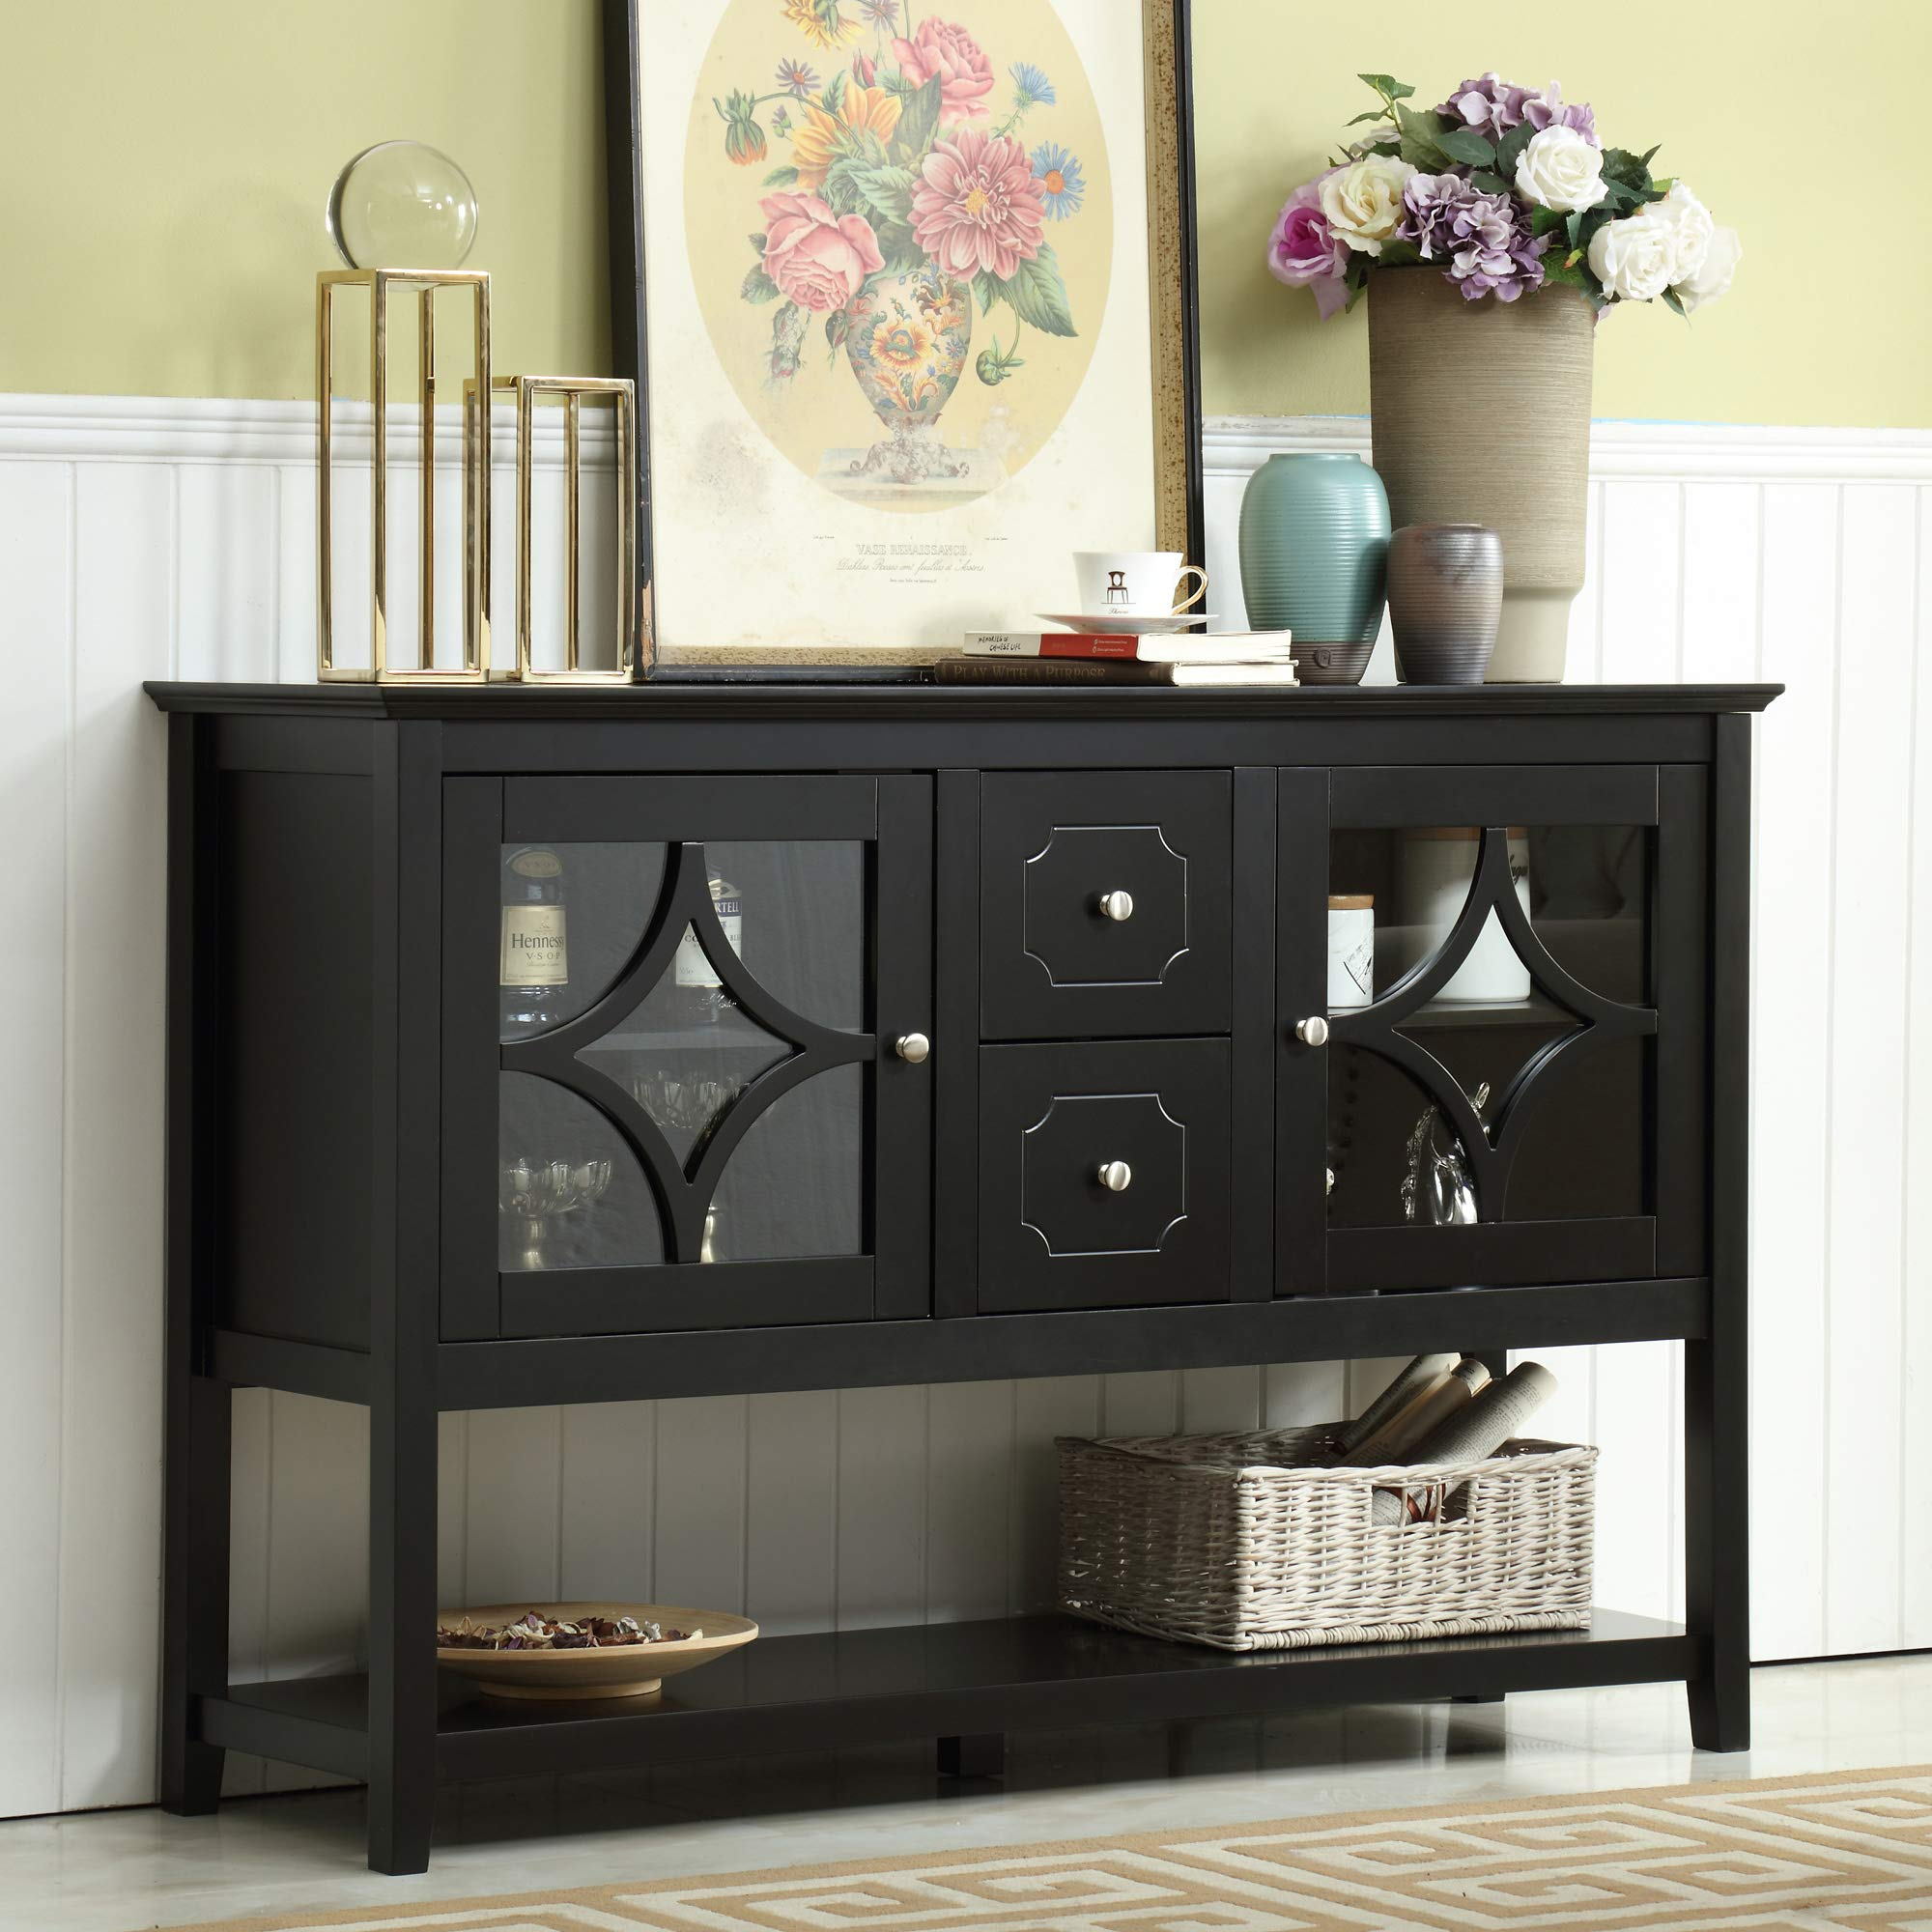 Mixcept 52'' Stylish Practical Sideboard Buffet Cabinet Wood Console Table Storage Cabinet with 2 Doors and 2 Drawers, Black by Mixcept